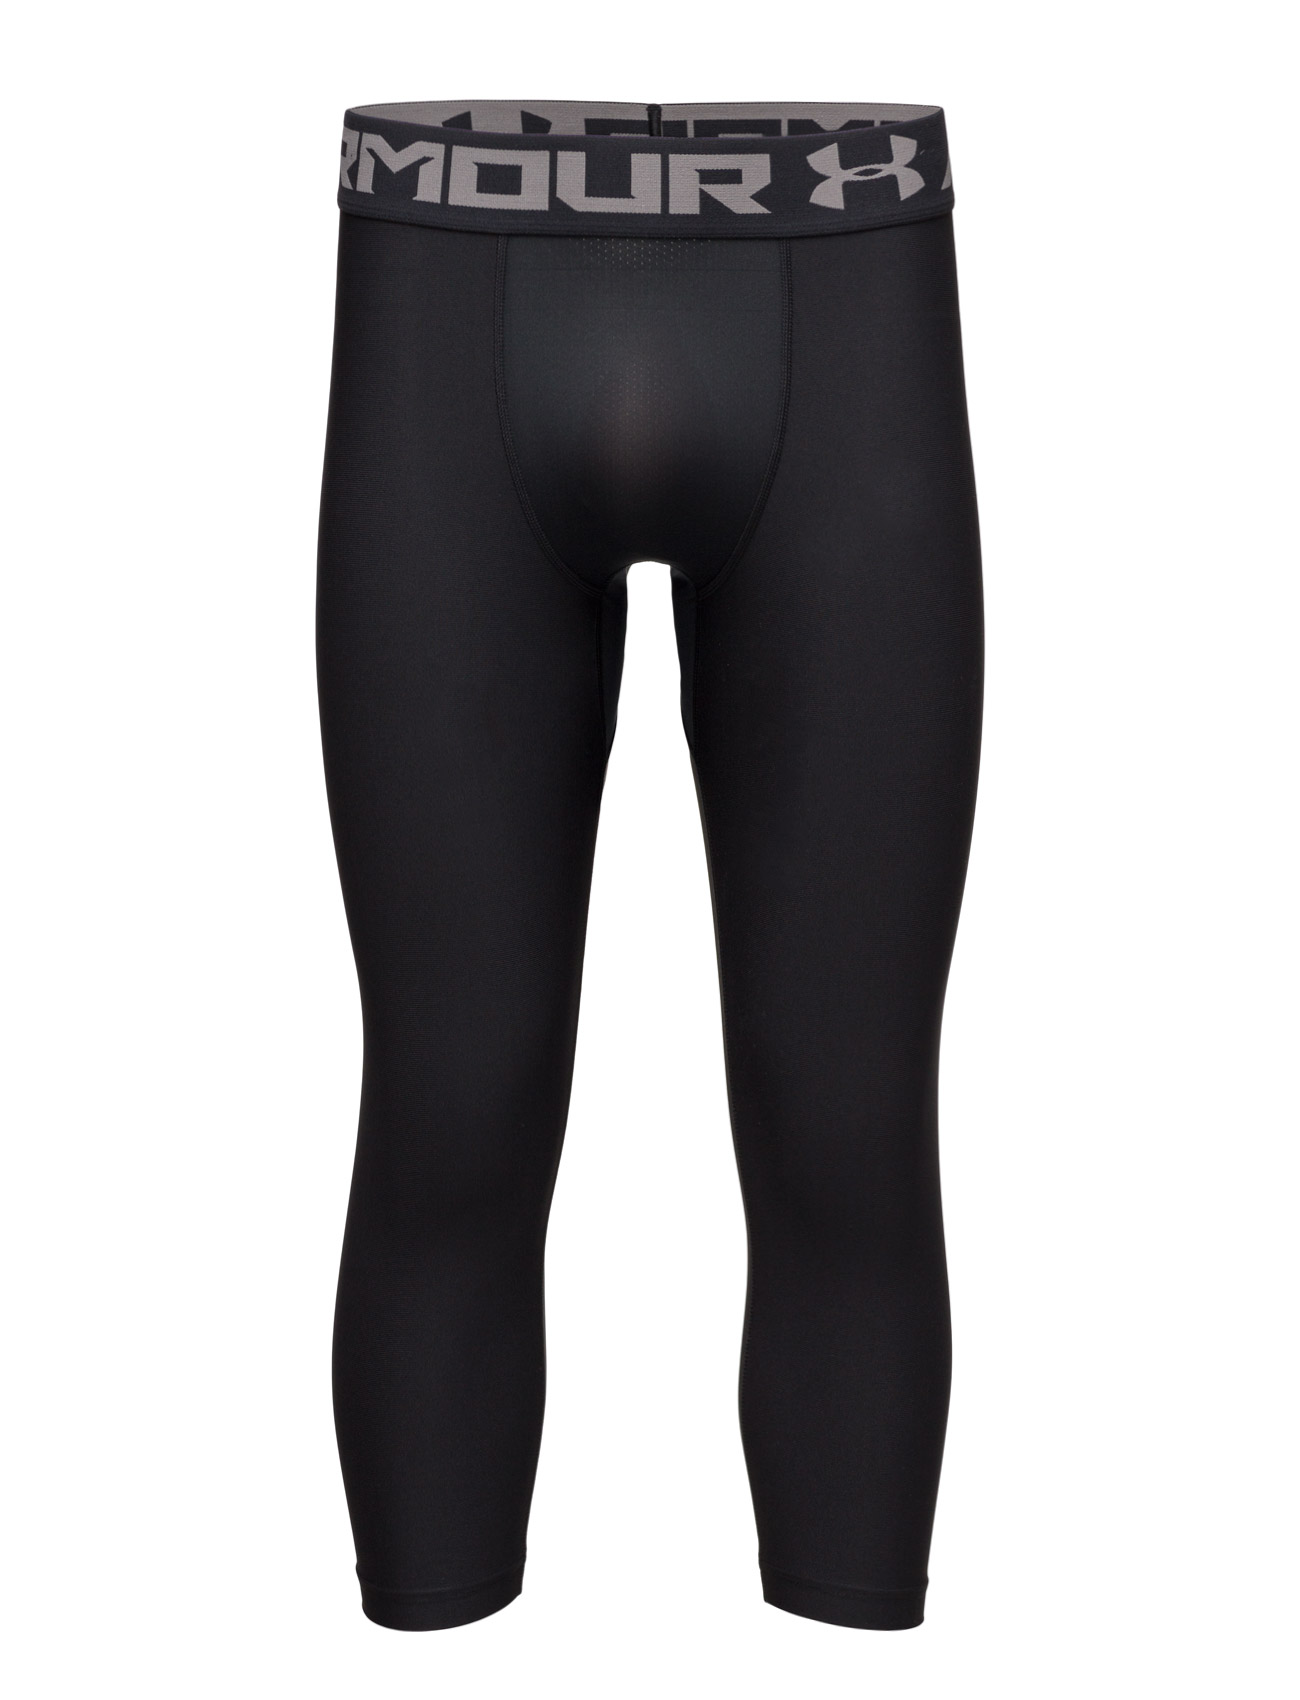 Hg Armour 2.0 3/4 Legging Under Armour Sportstøj til Mænd i